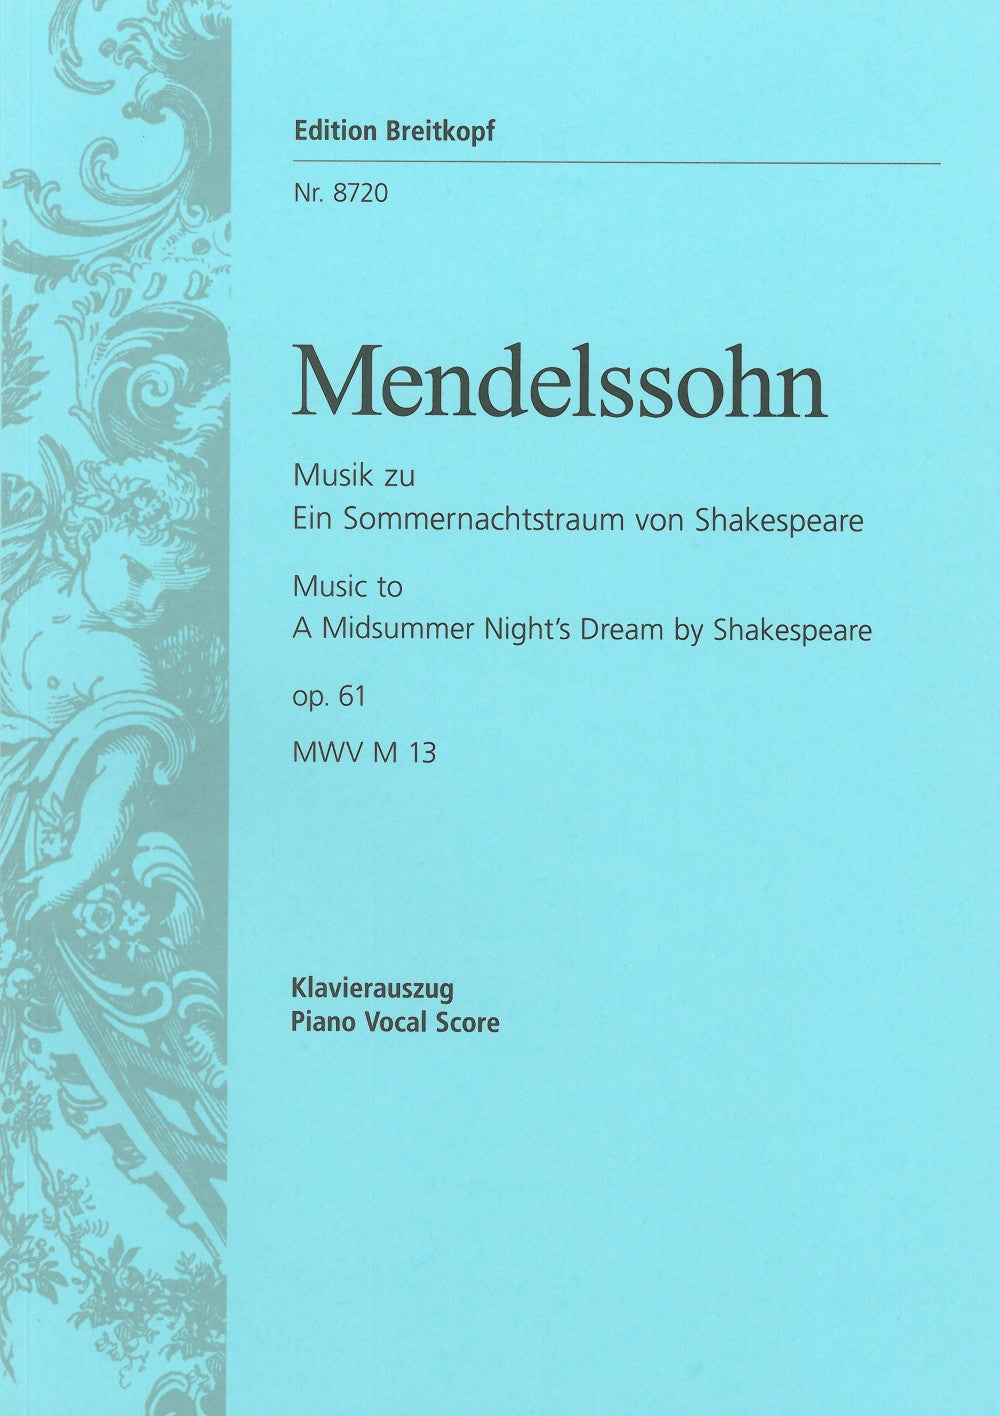 Mendelssohn: A Midsummer Night's Dream, MWV M 13, Op. 61